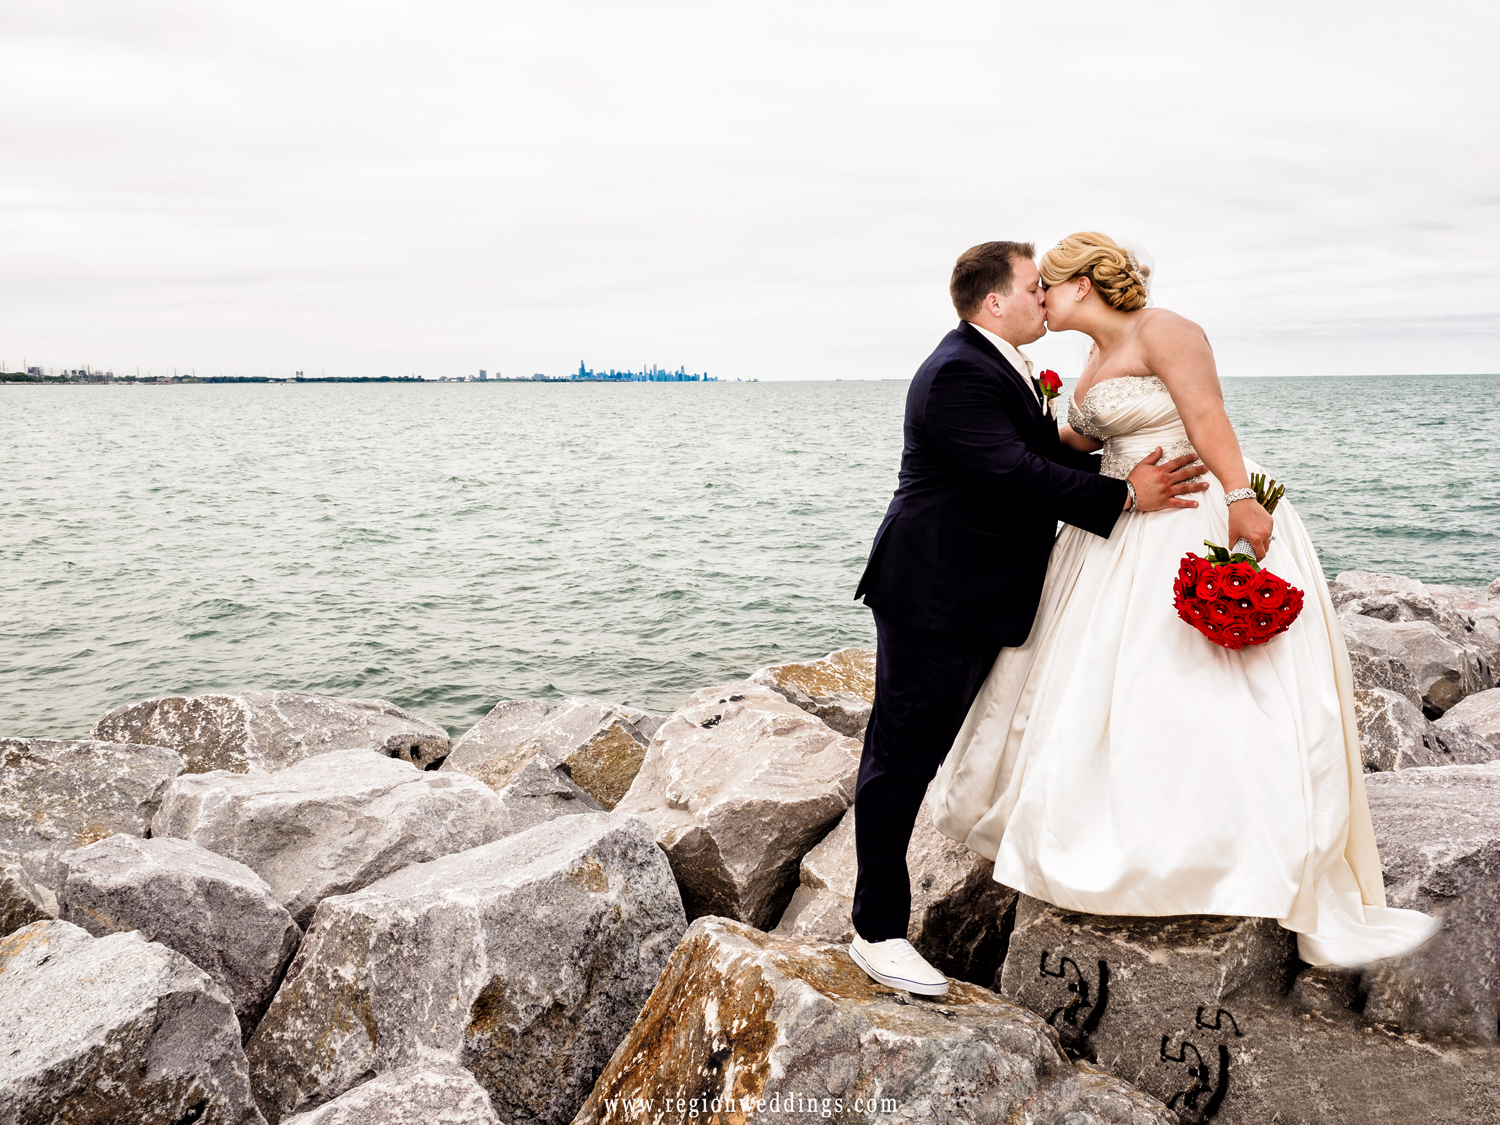 The bride and groom share a kiss on the rocks of the shoreline at Whiting Lakefront Park.